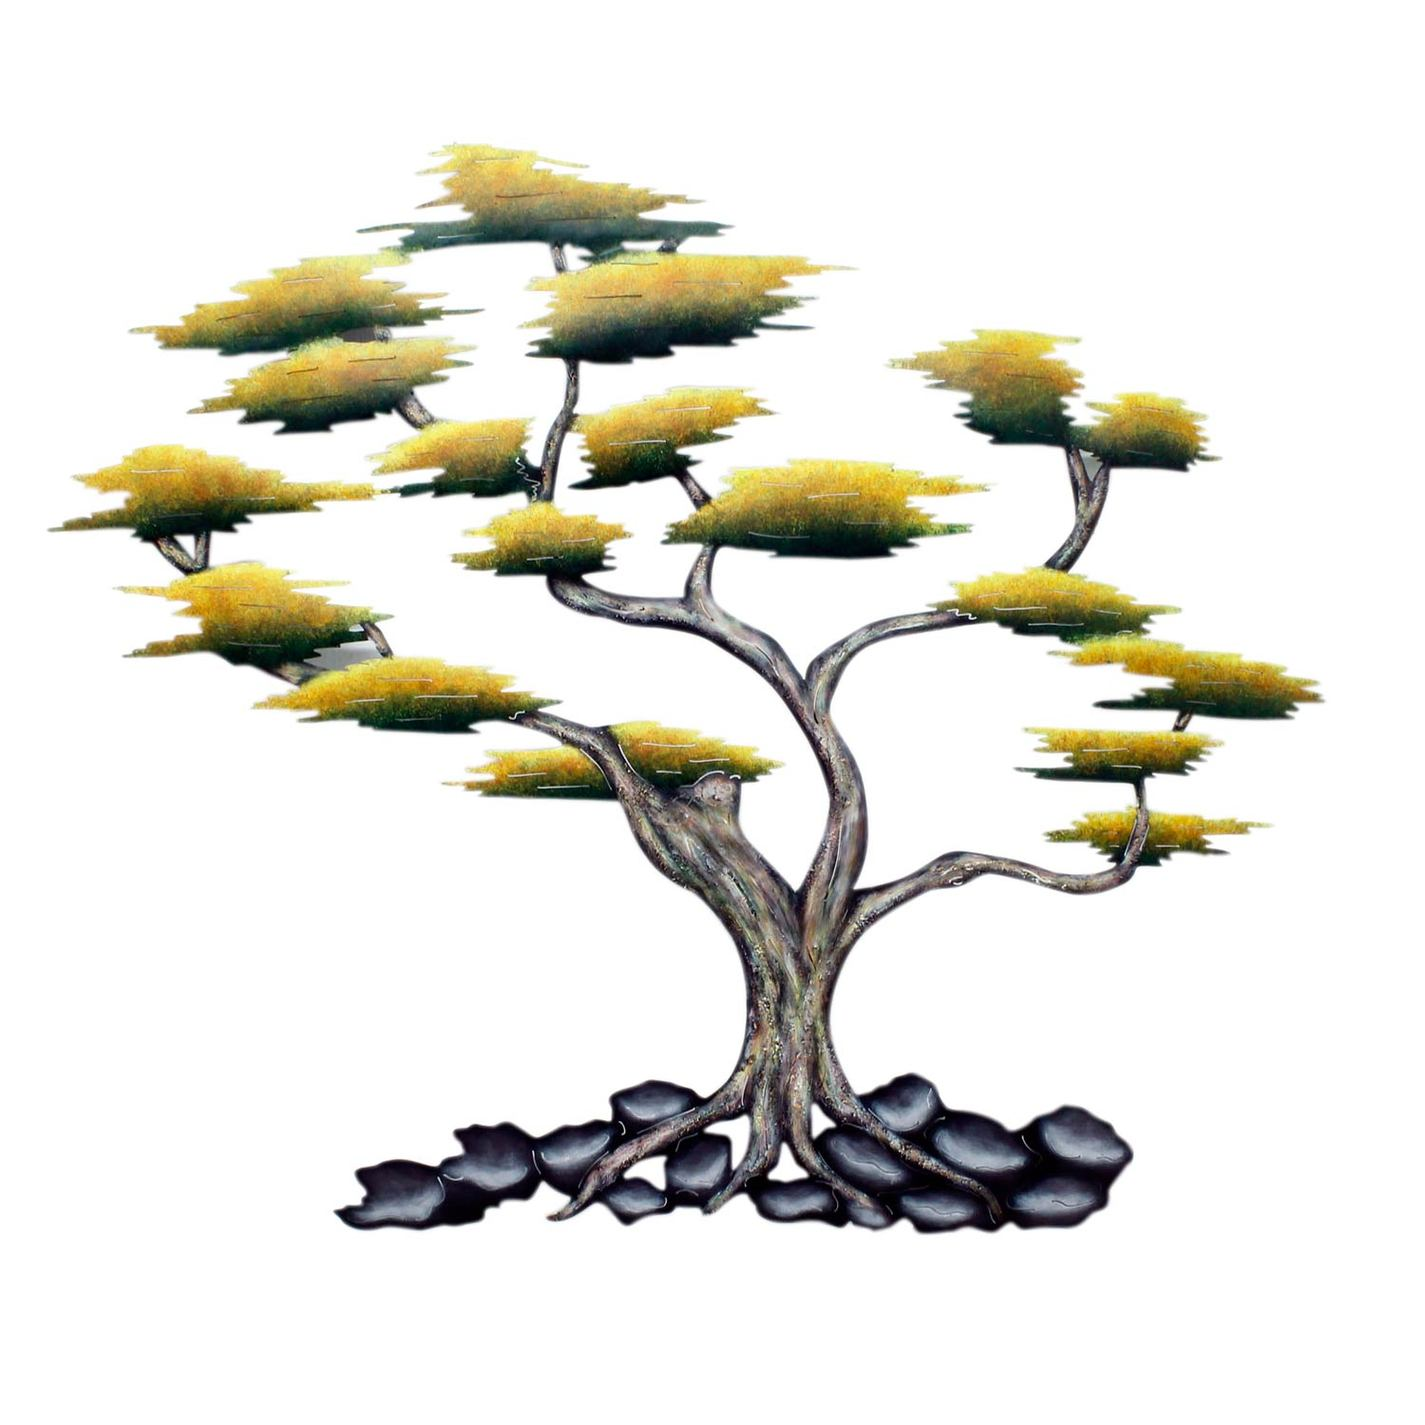 Cypress trees clipart 20 free Cliparts | Download images ...